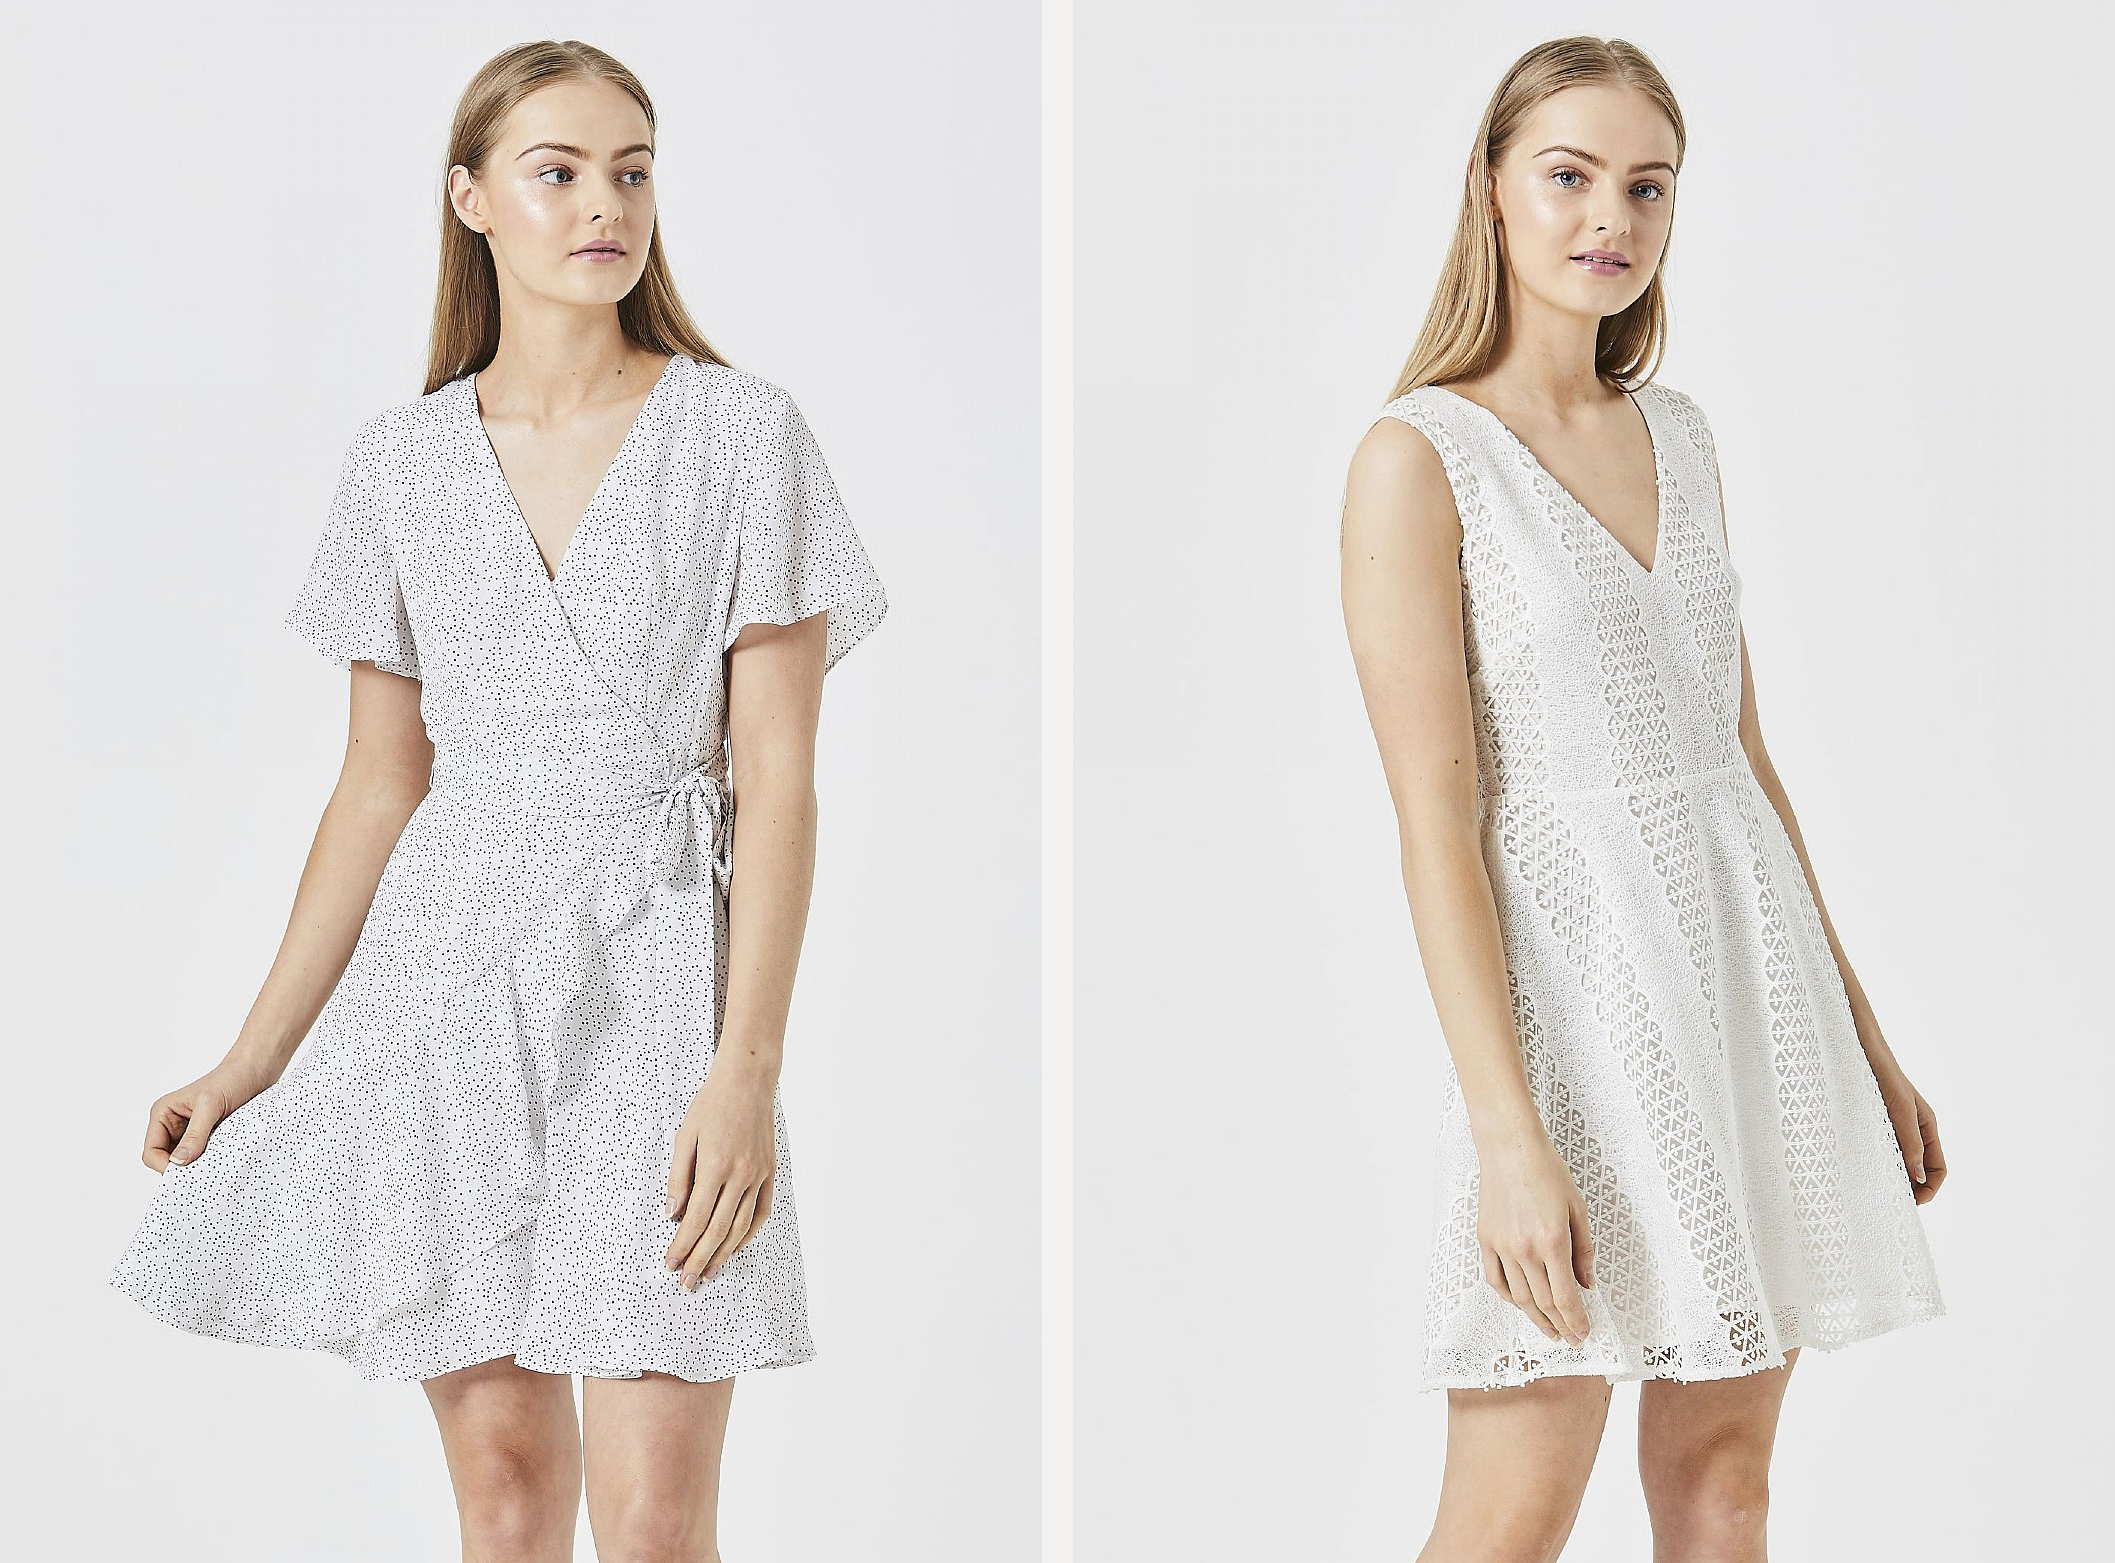 White angeleye fashion dresses